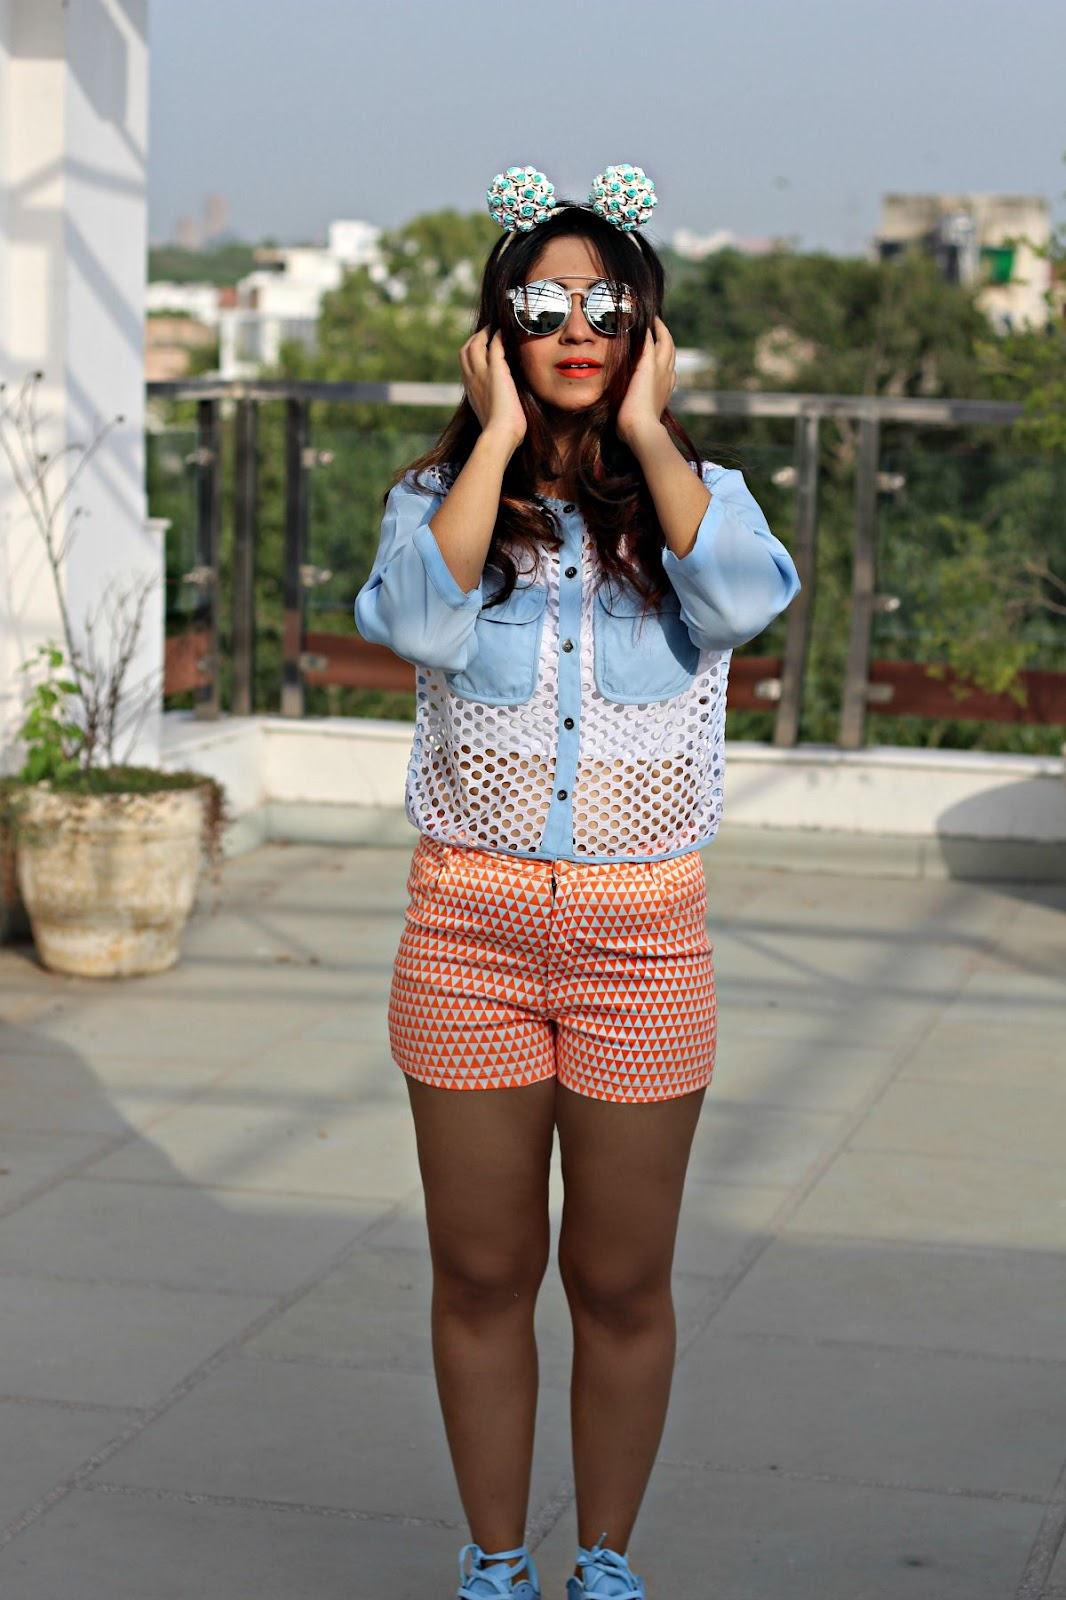 sneakers with shorts, crop top with sneakers